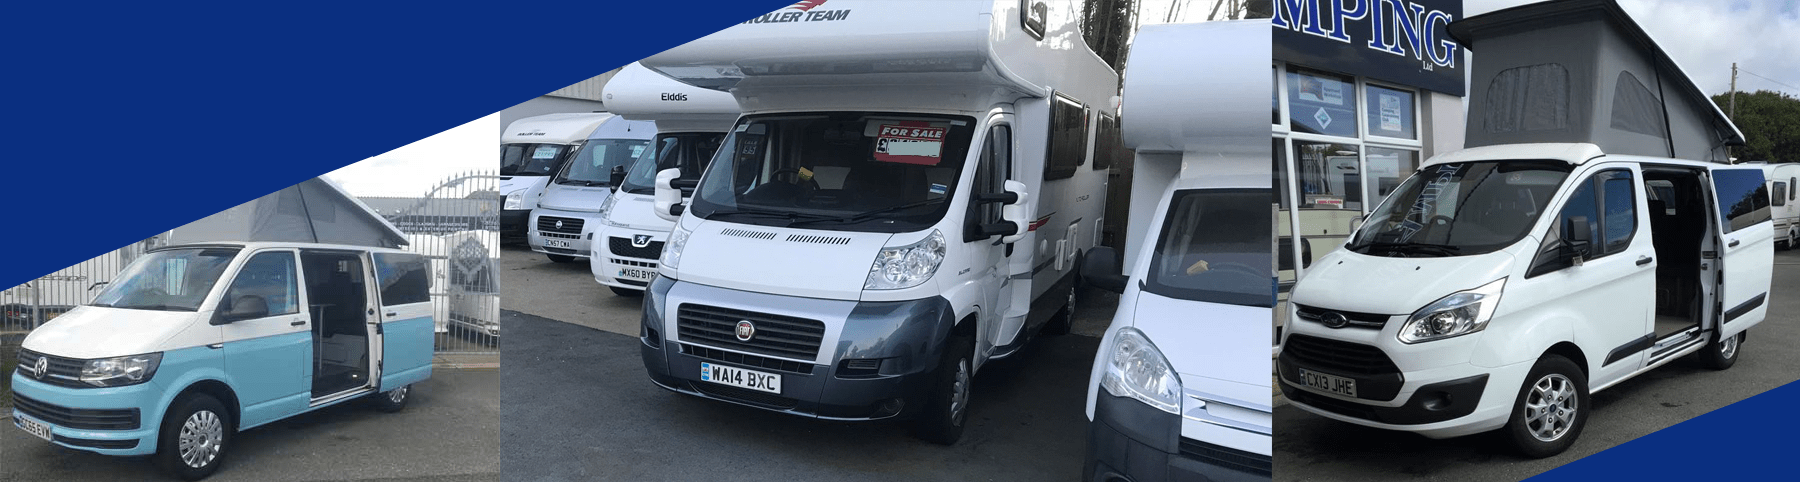 Buy Motorhomes and Campervans